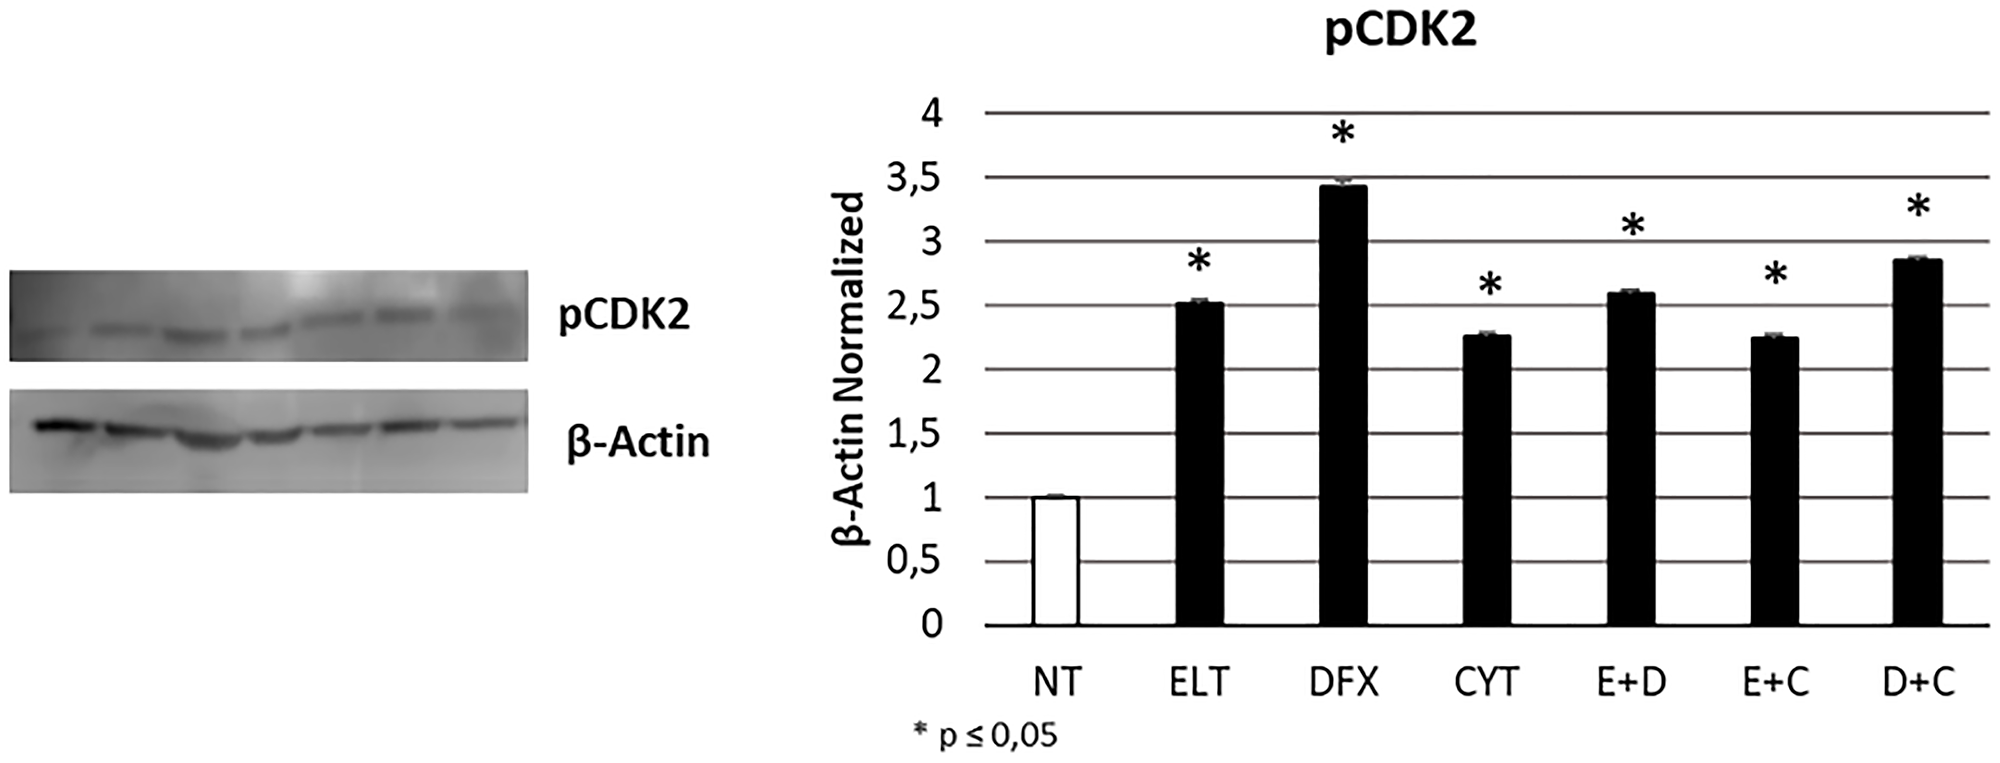 Effect of 48-hour treatments on cell cycle progression.